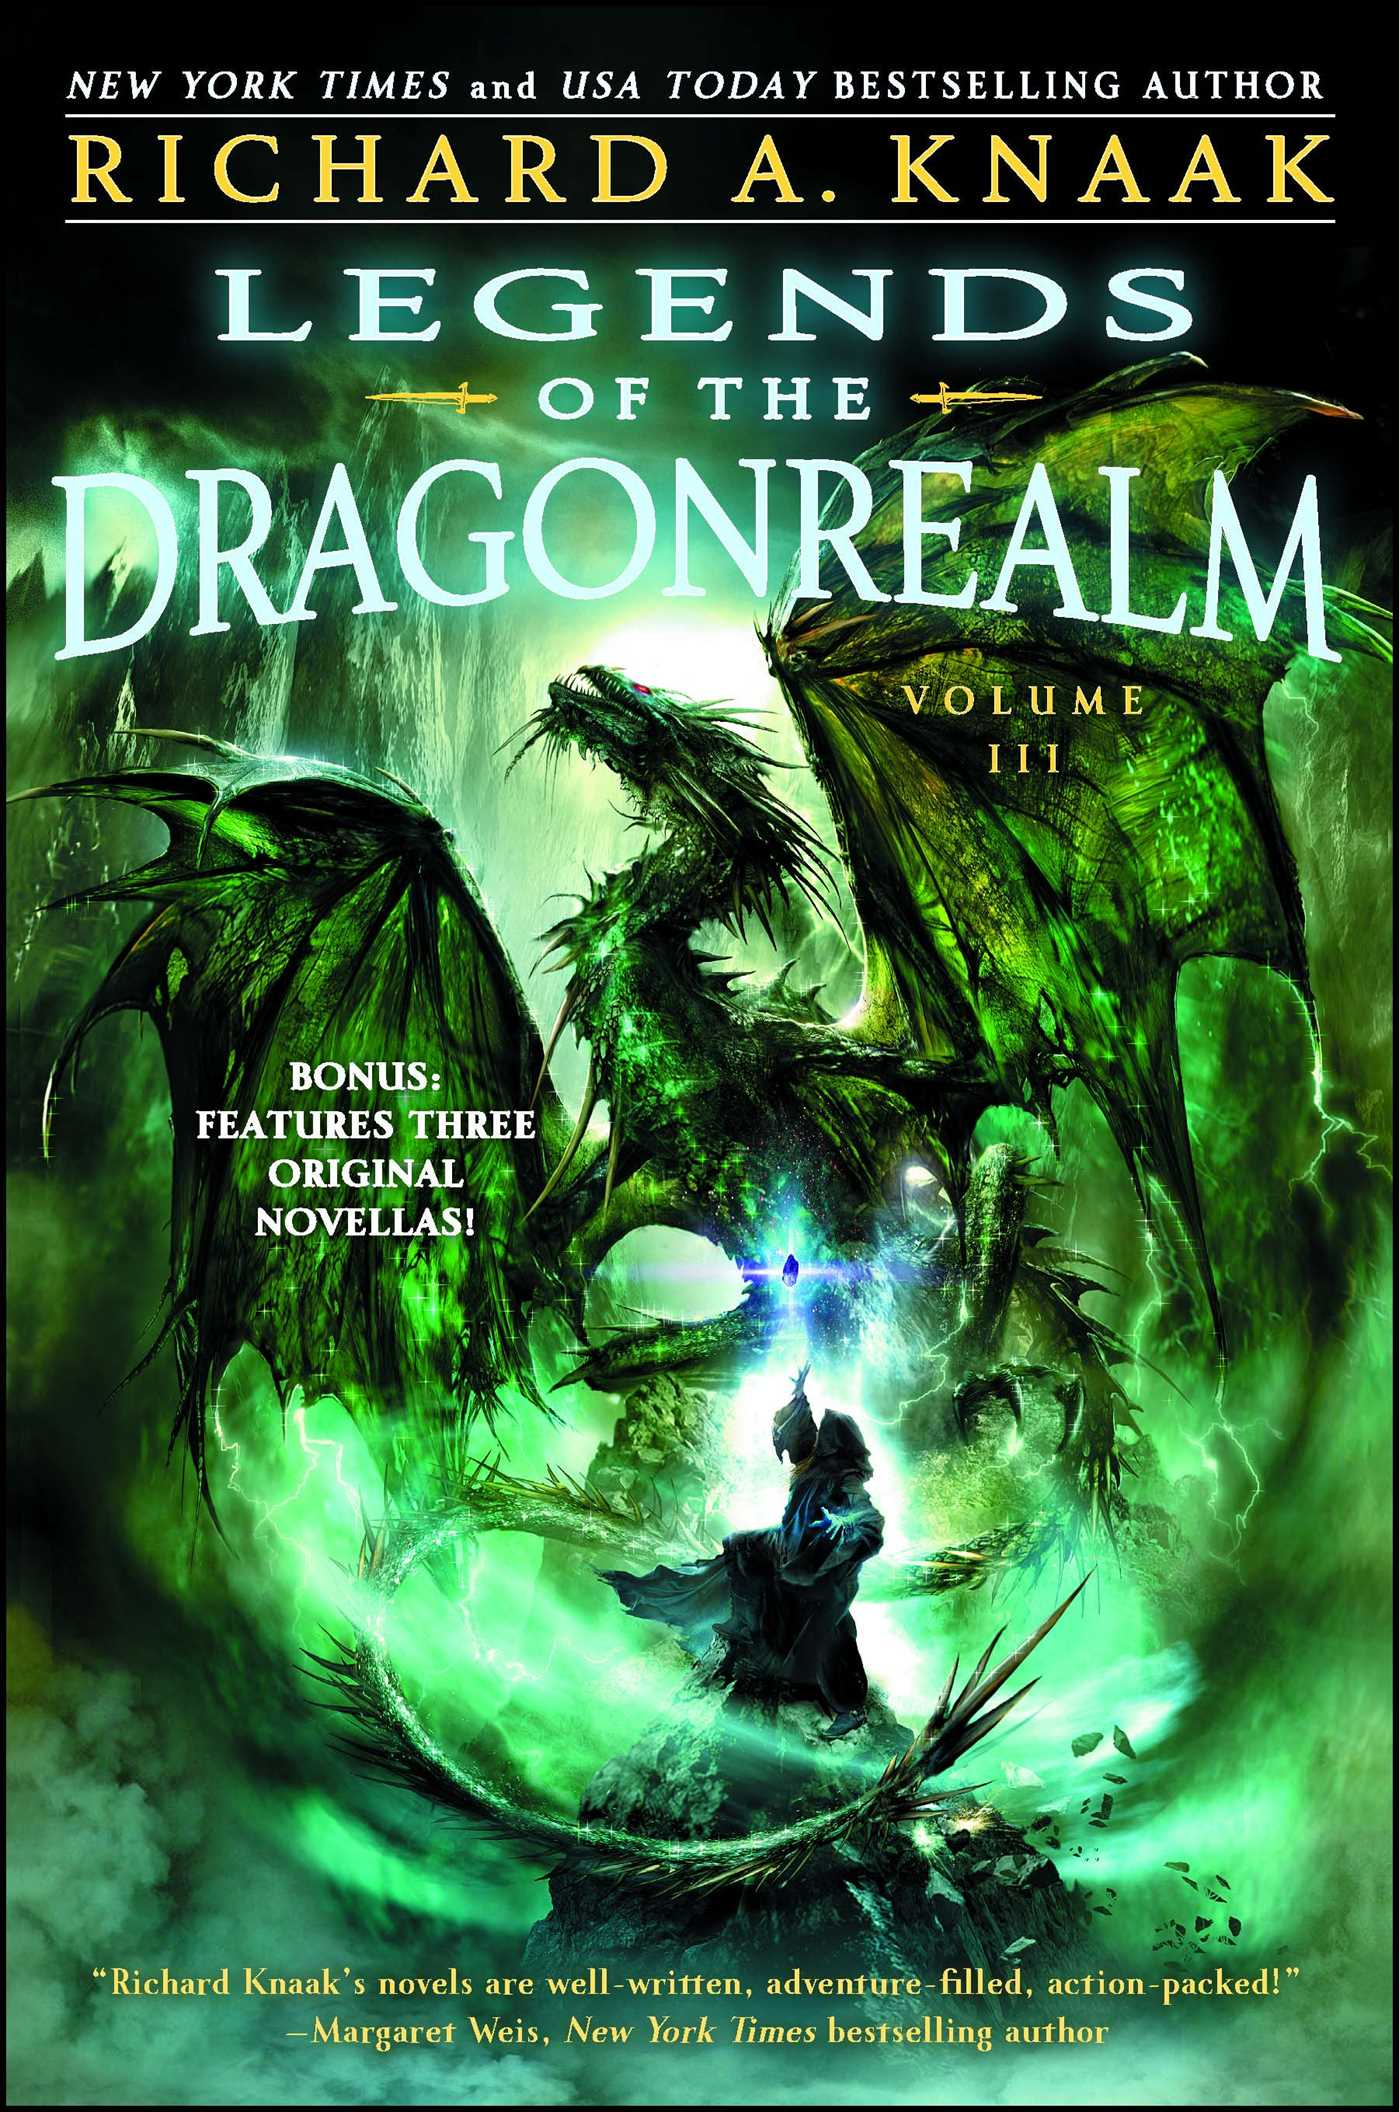 Legends of the Dragonrealm, Vol  III | Book by Richard A